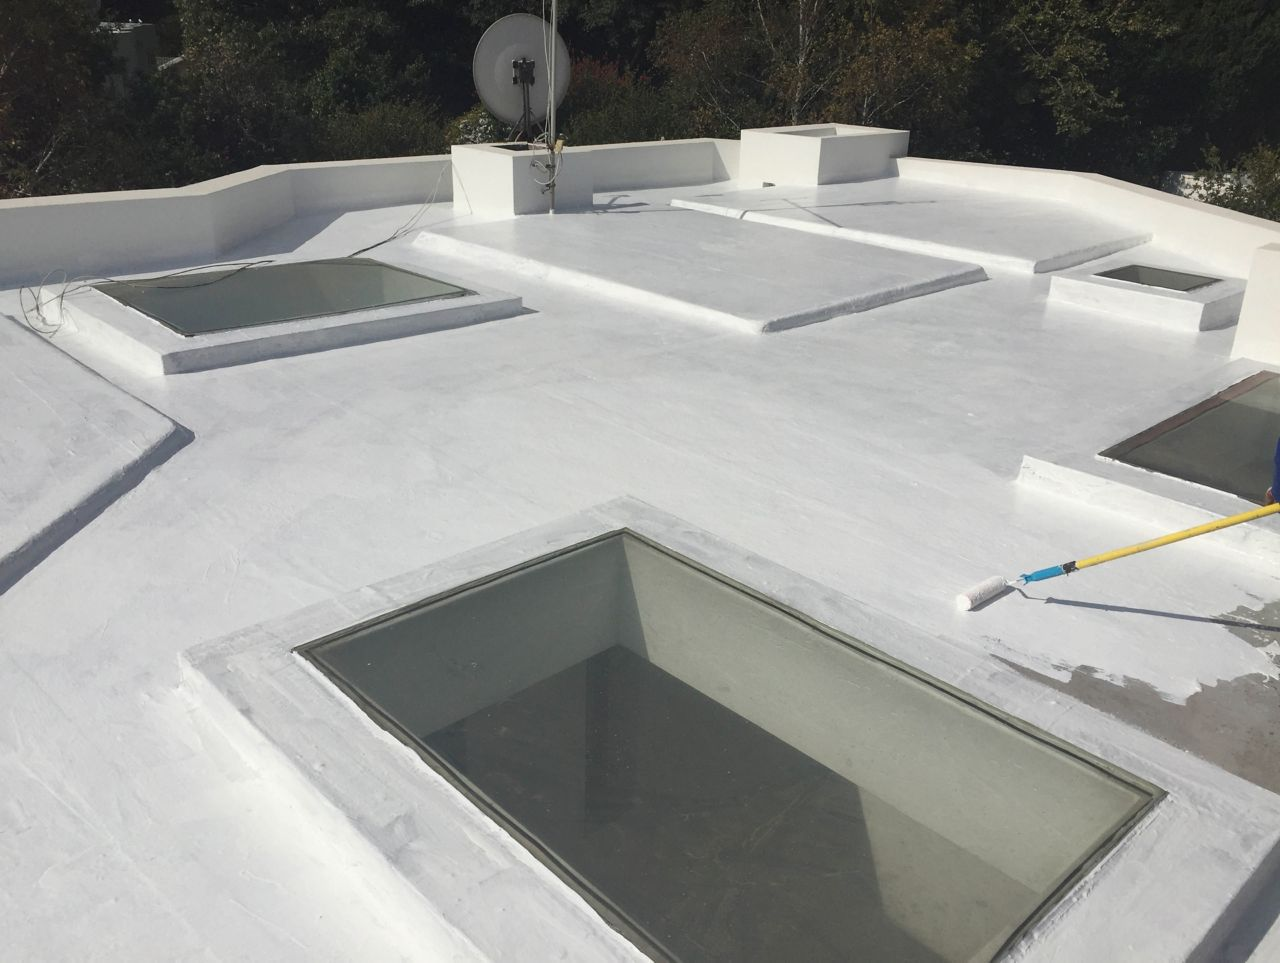 Waterproof System for a Flat Roof